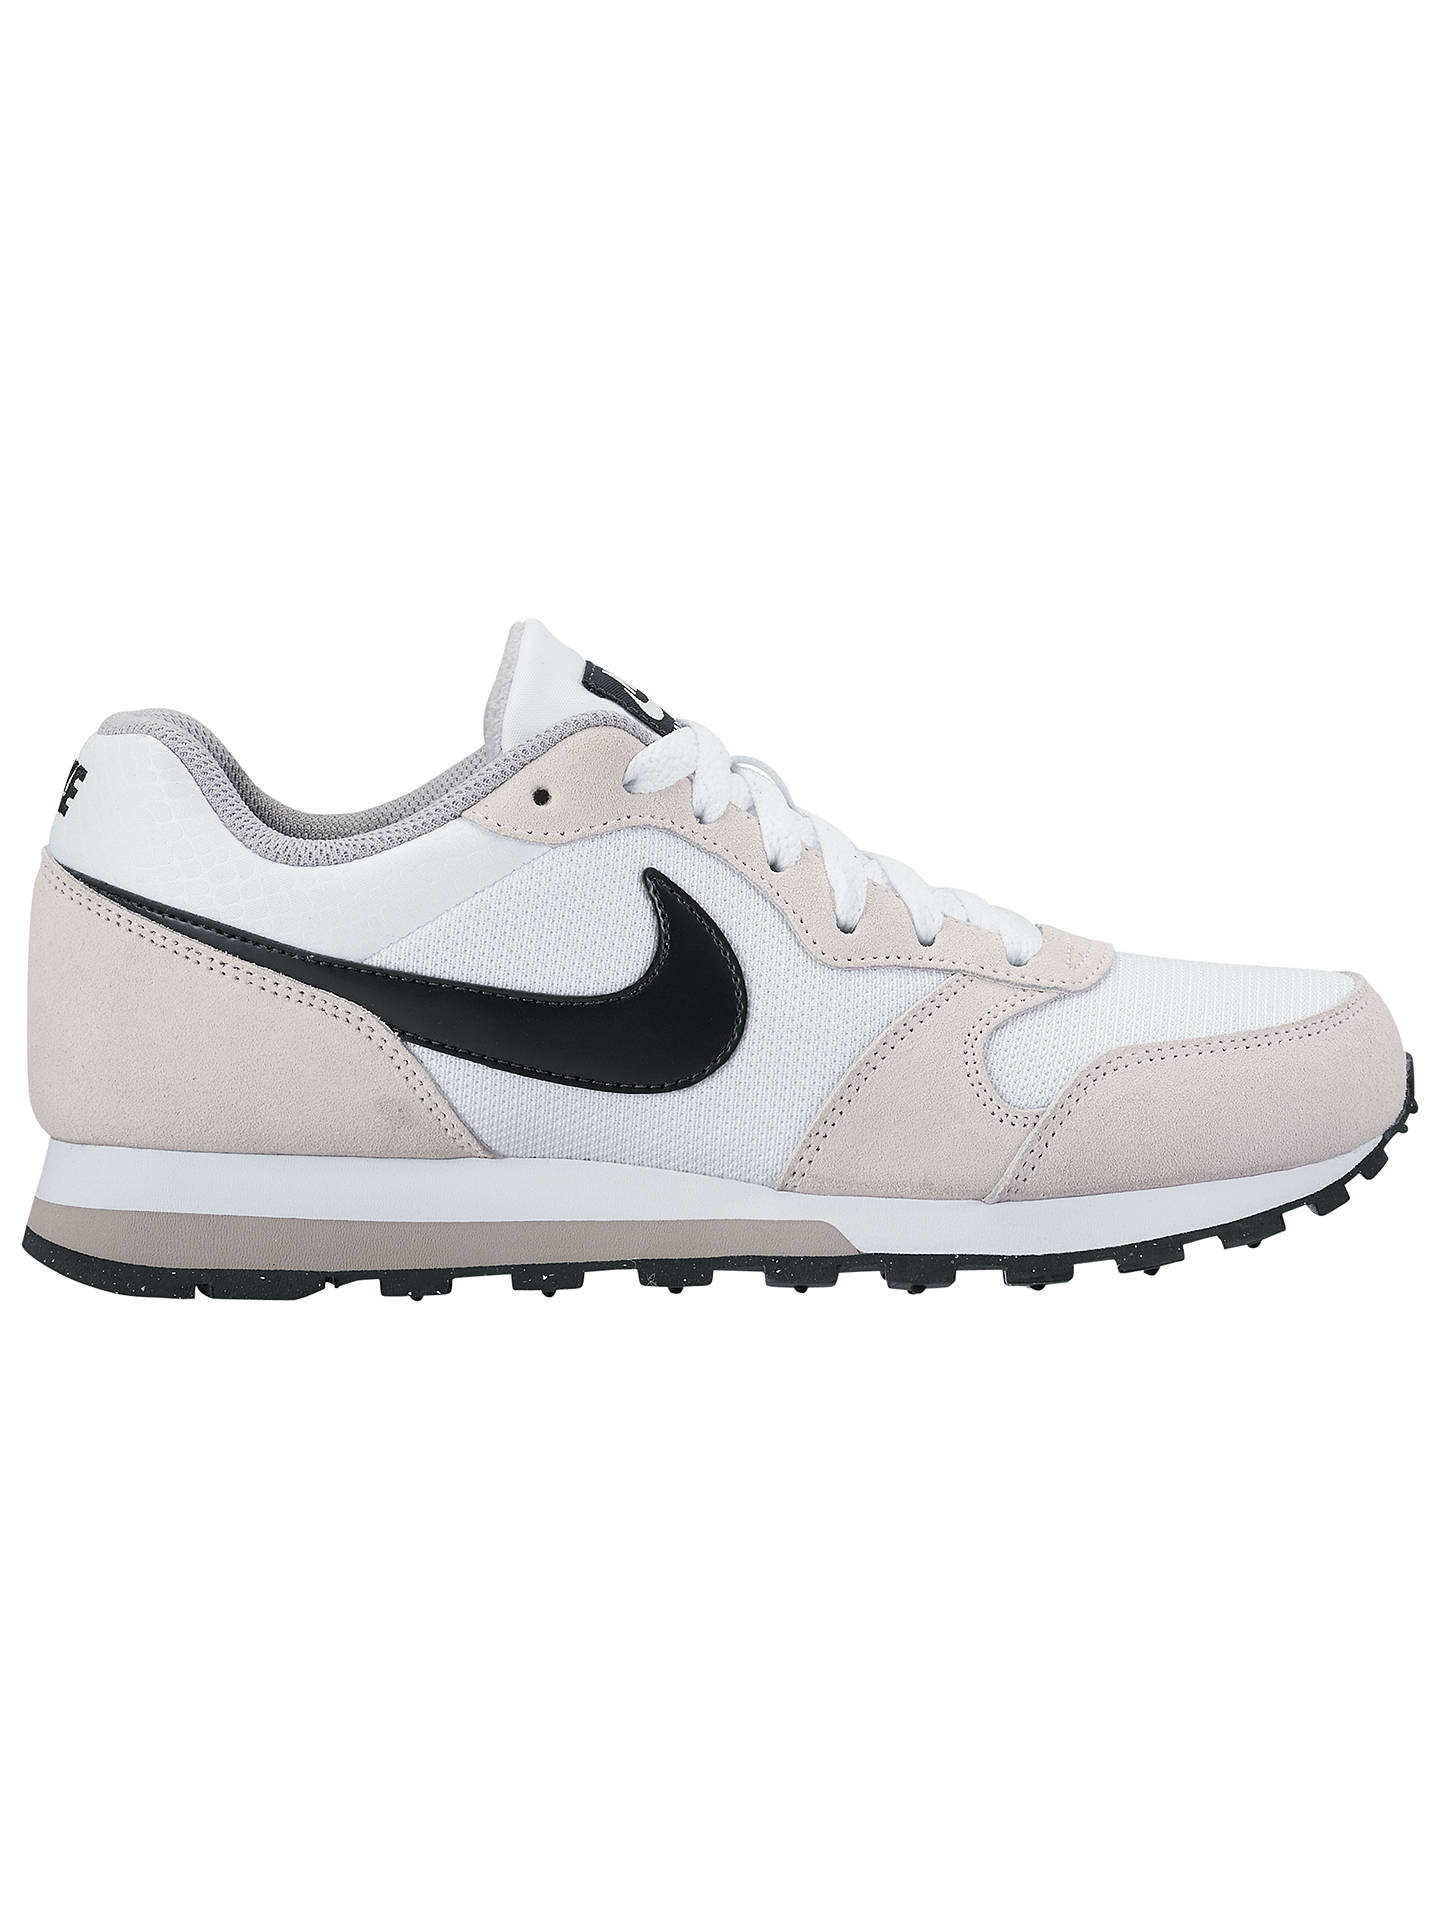 7db3a0ba6a1 Buy Nike MD Runner 2 Women's Trainers, White, 4 Online at johnlewis. ...